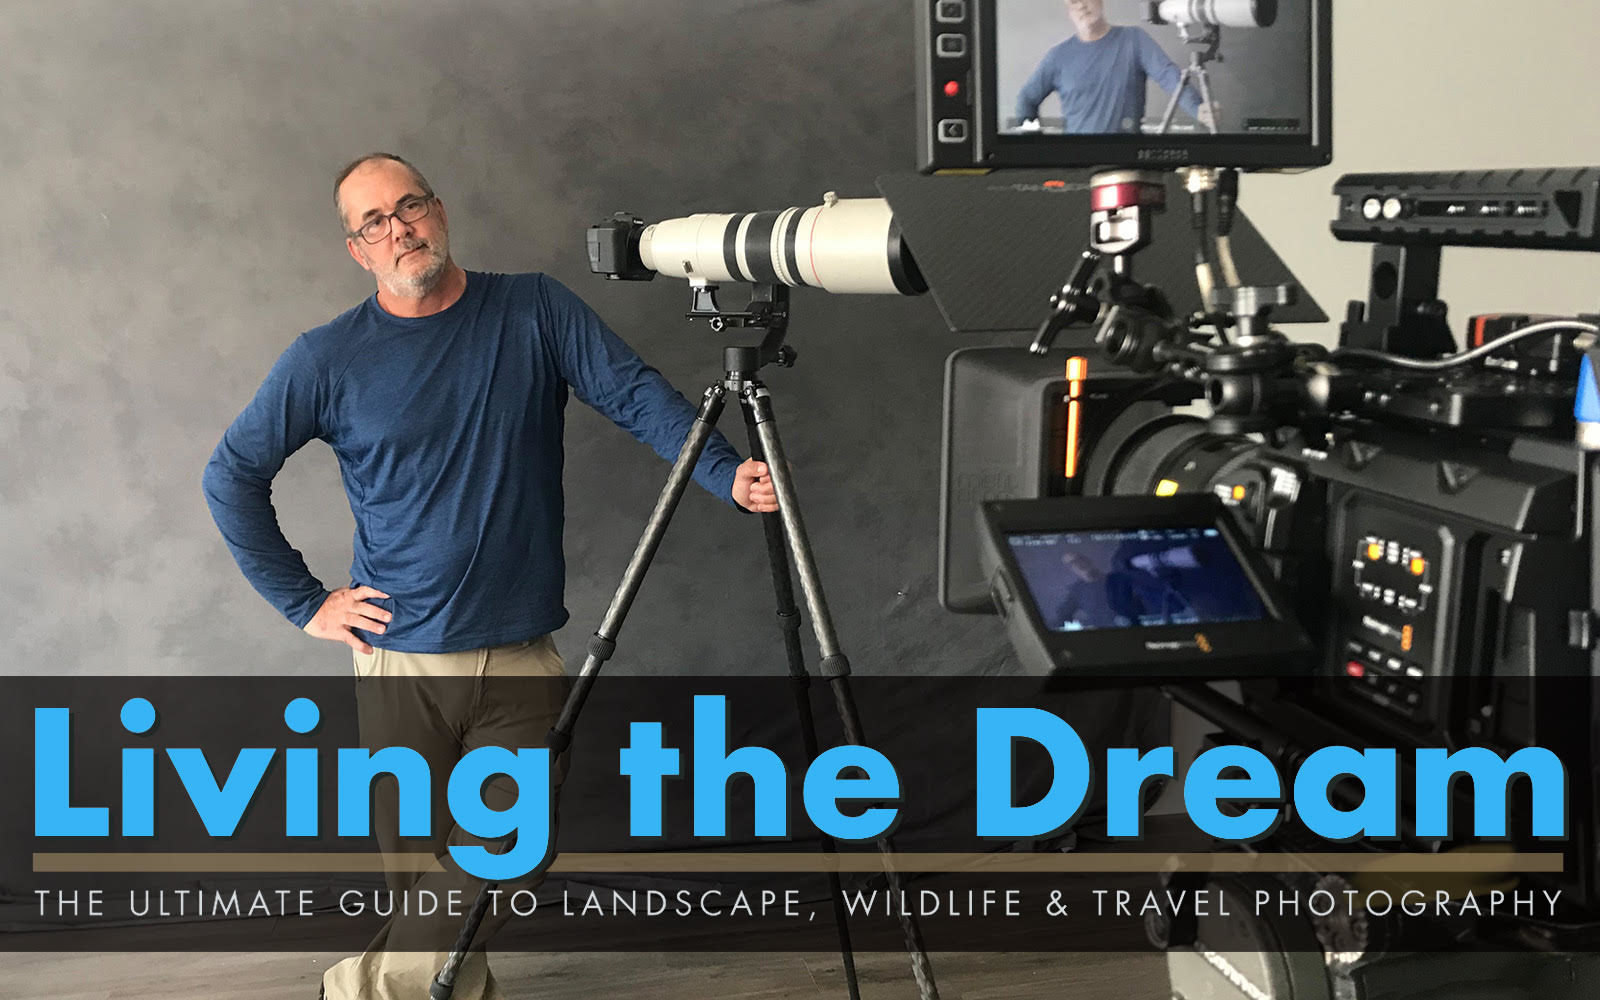 Living The Dream: My New Online Photography Course